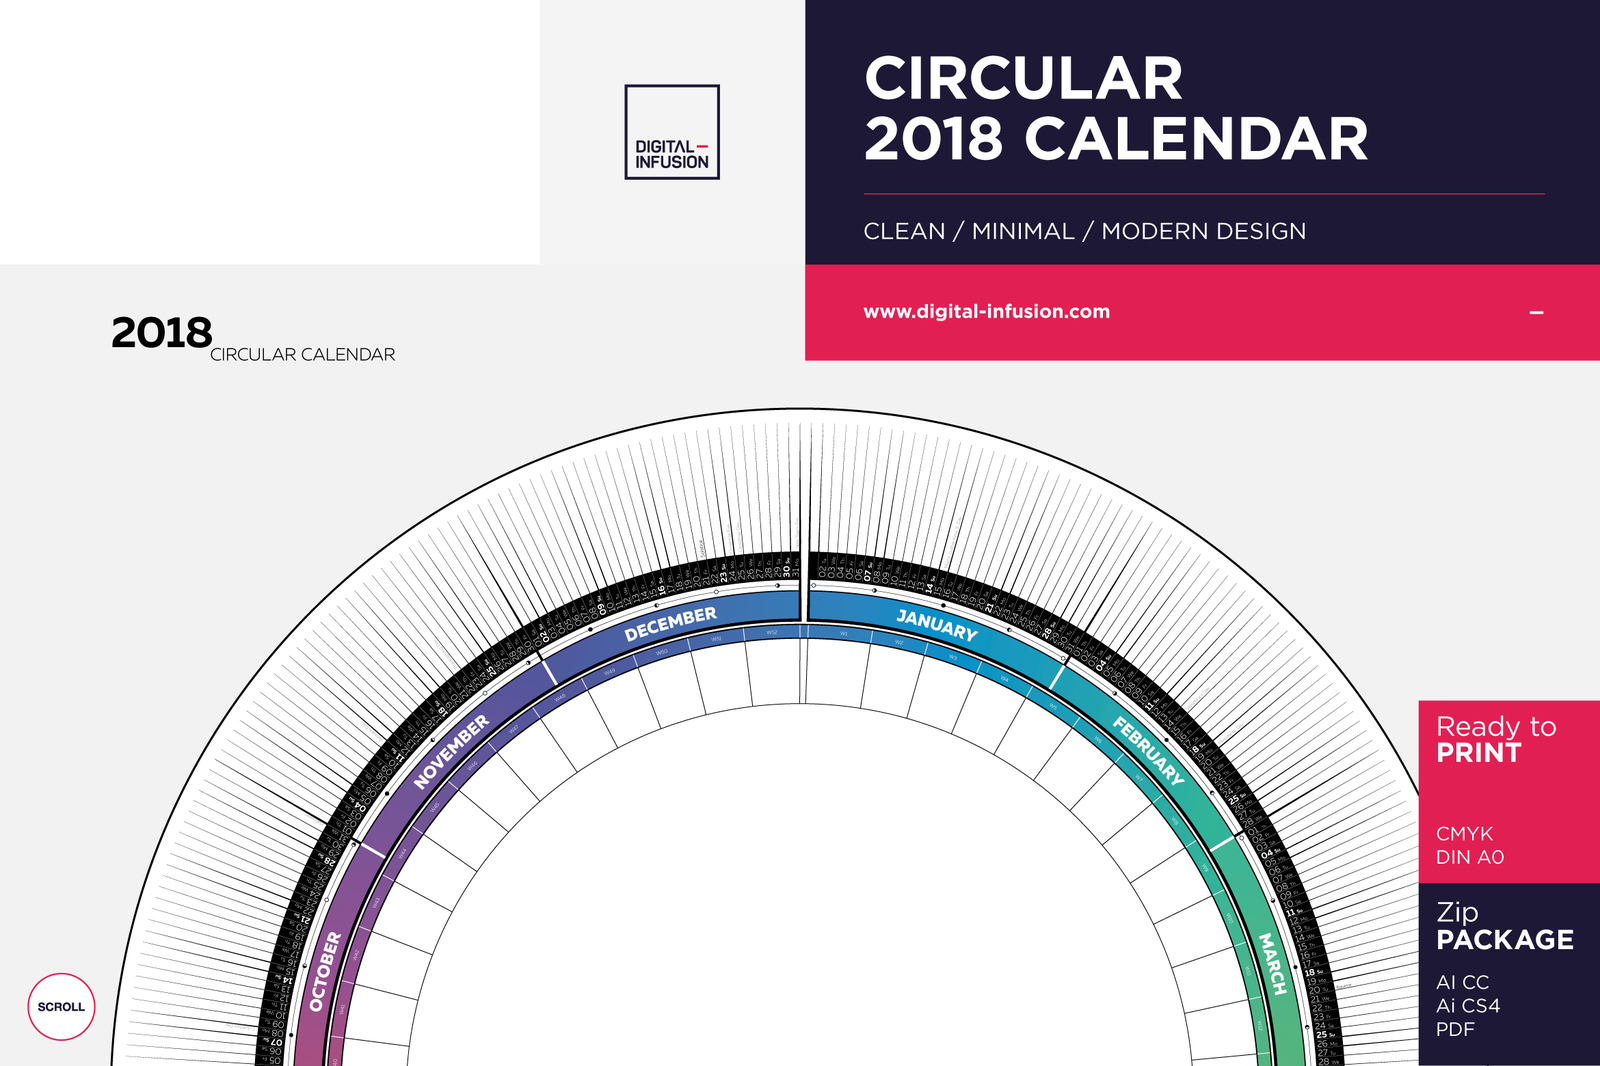 full moon calendar 2018 circular 2018 calendar in poster templates on yellow images creative